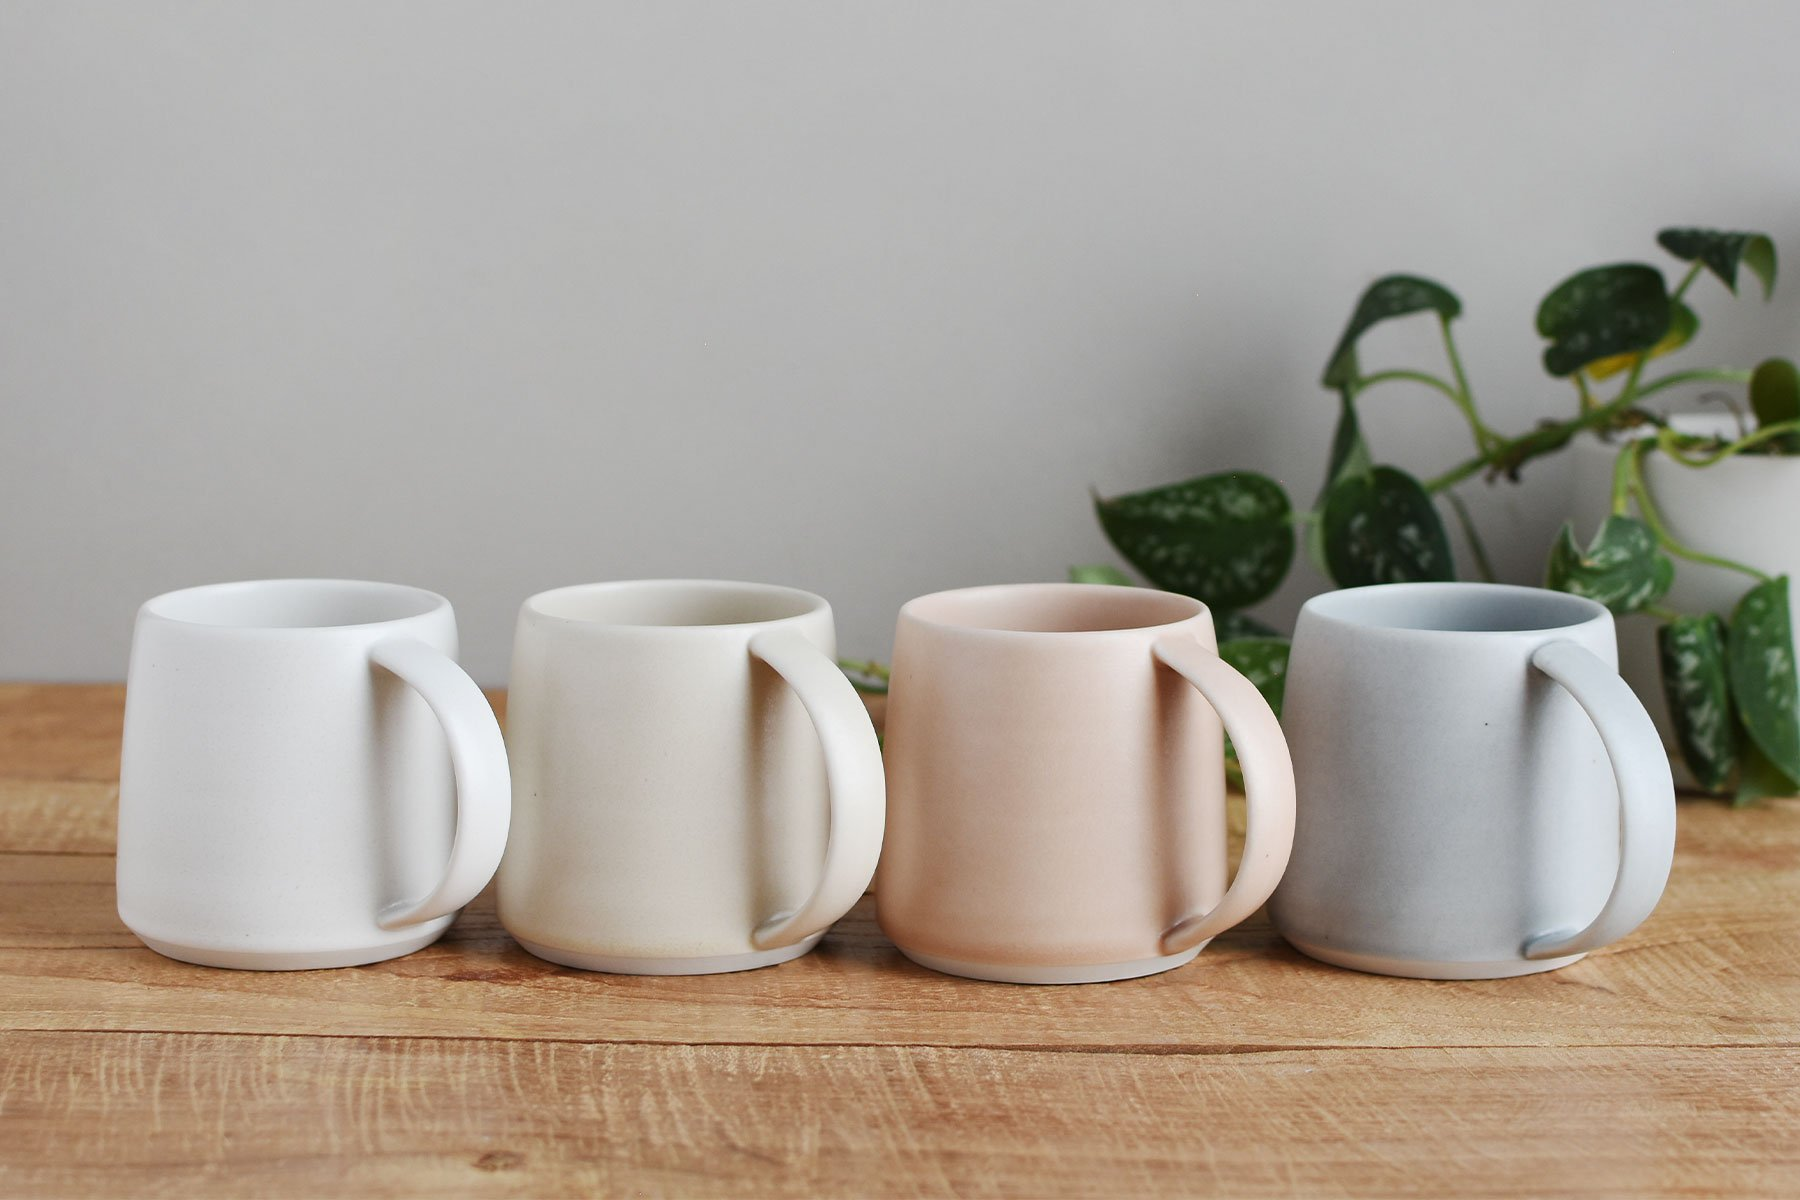 RIPPLE mug collection in beige, pink, gray, white